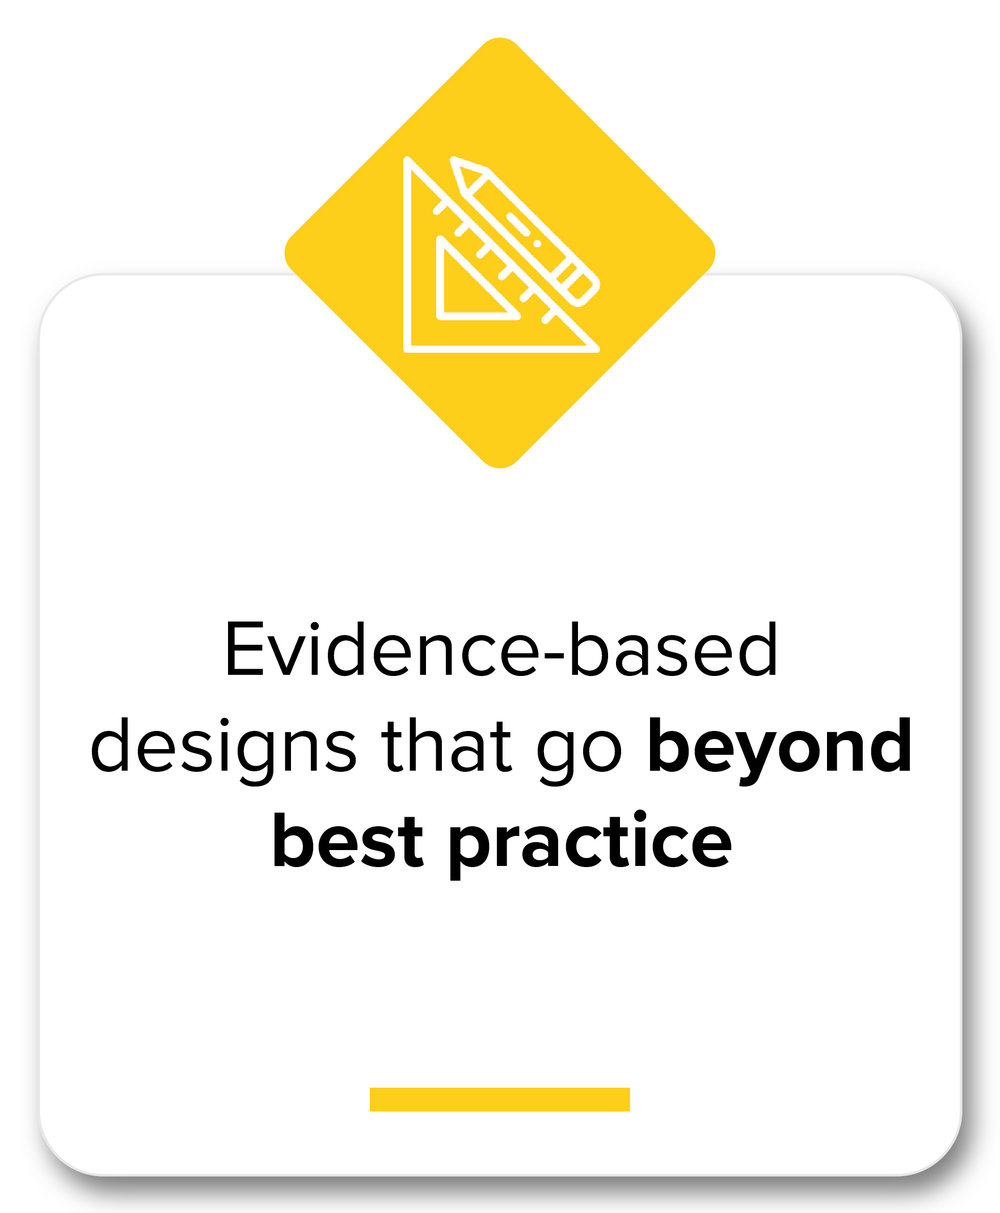 Evidence-based designs beyond best practice-10.jpg